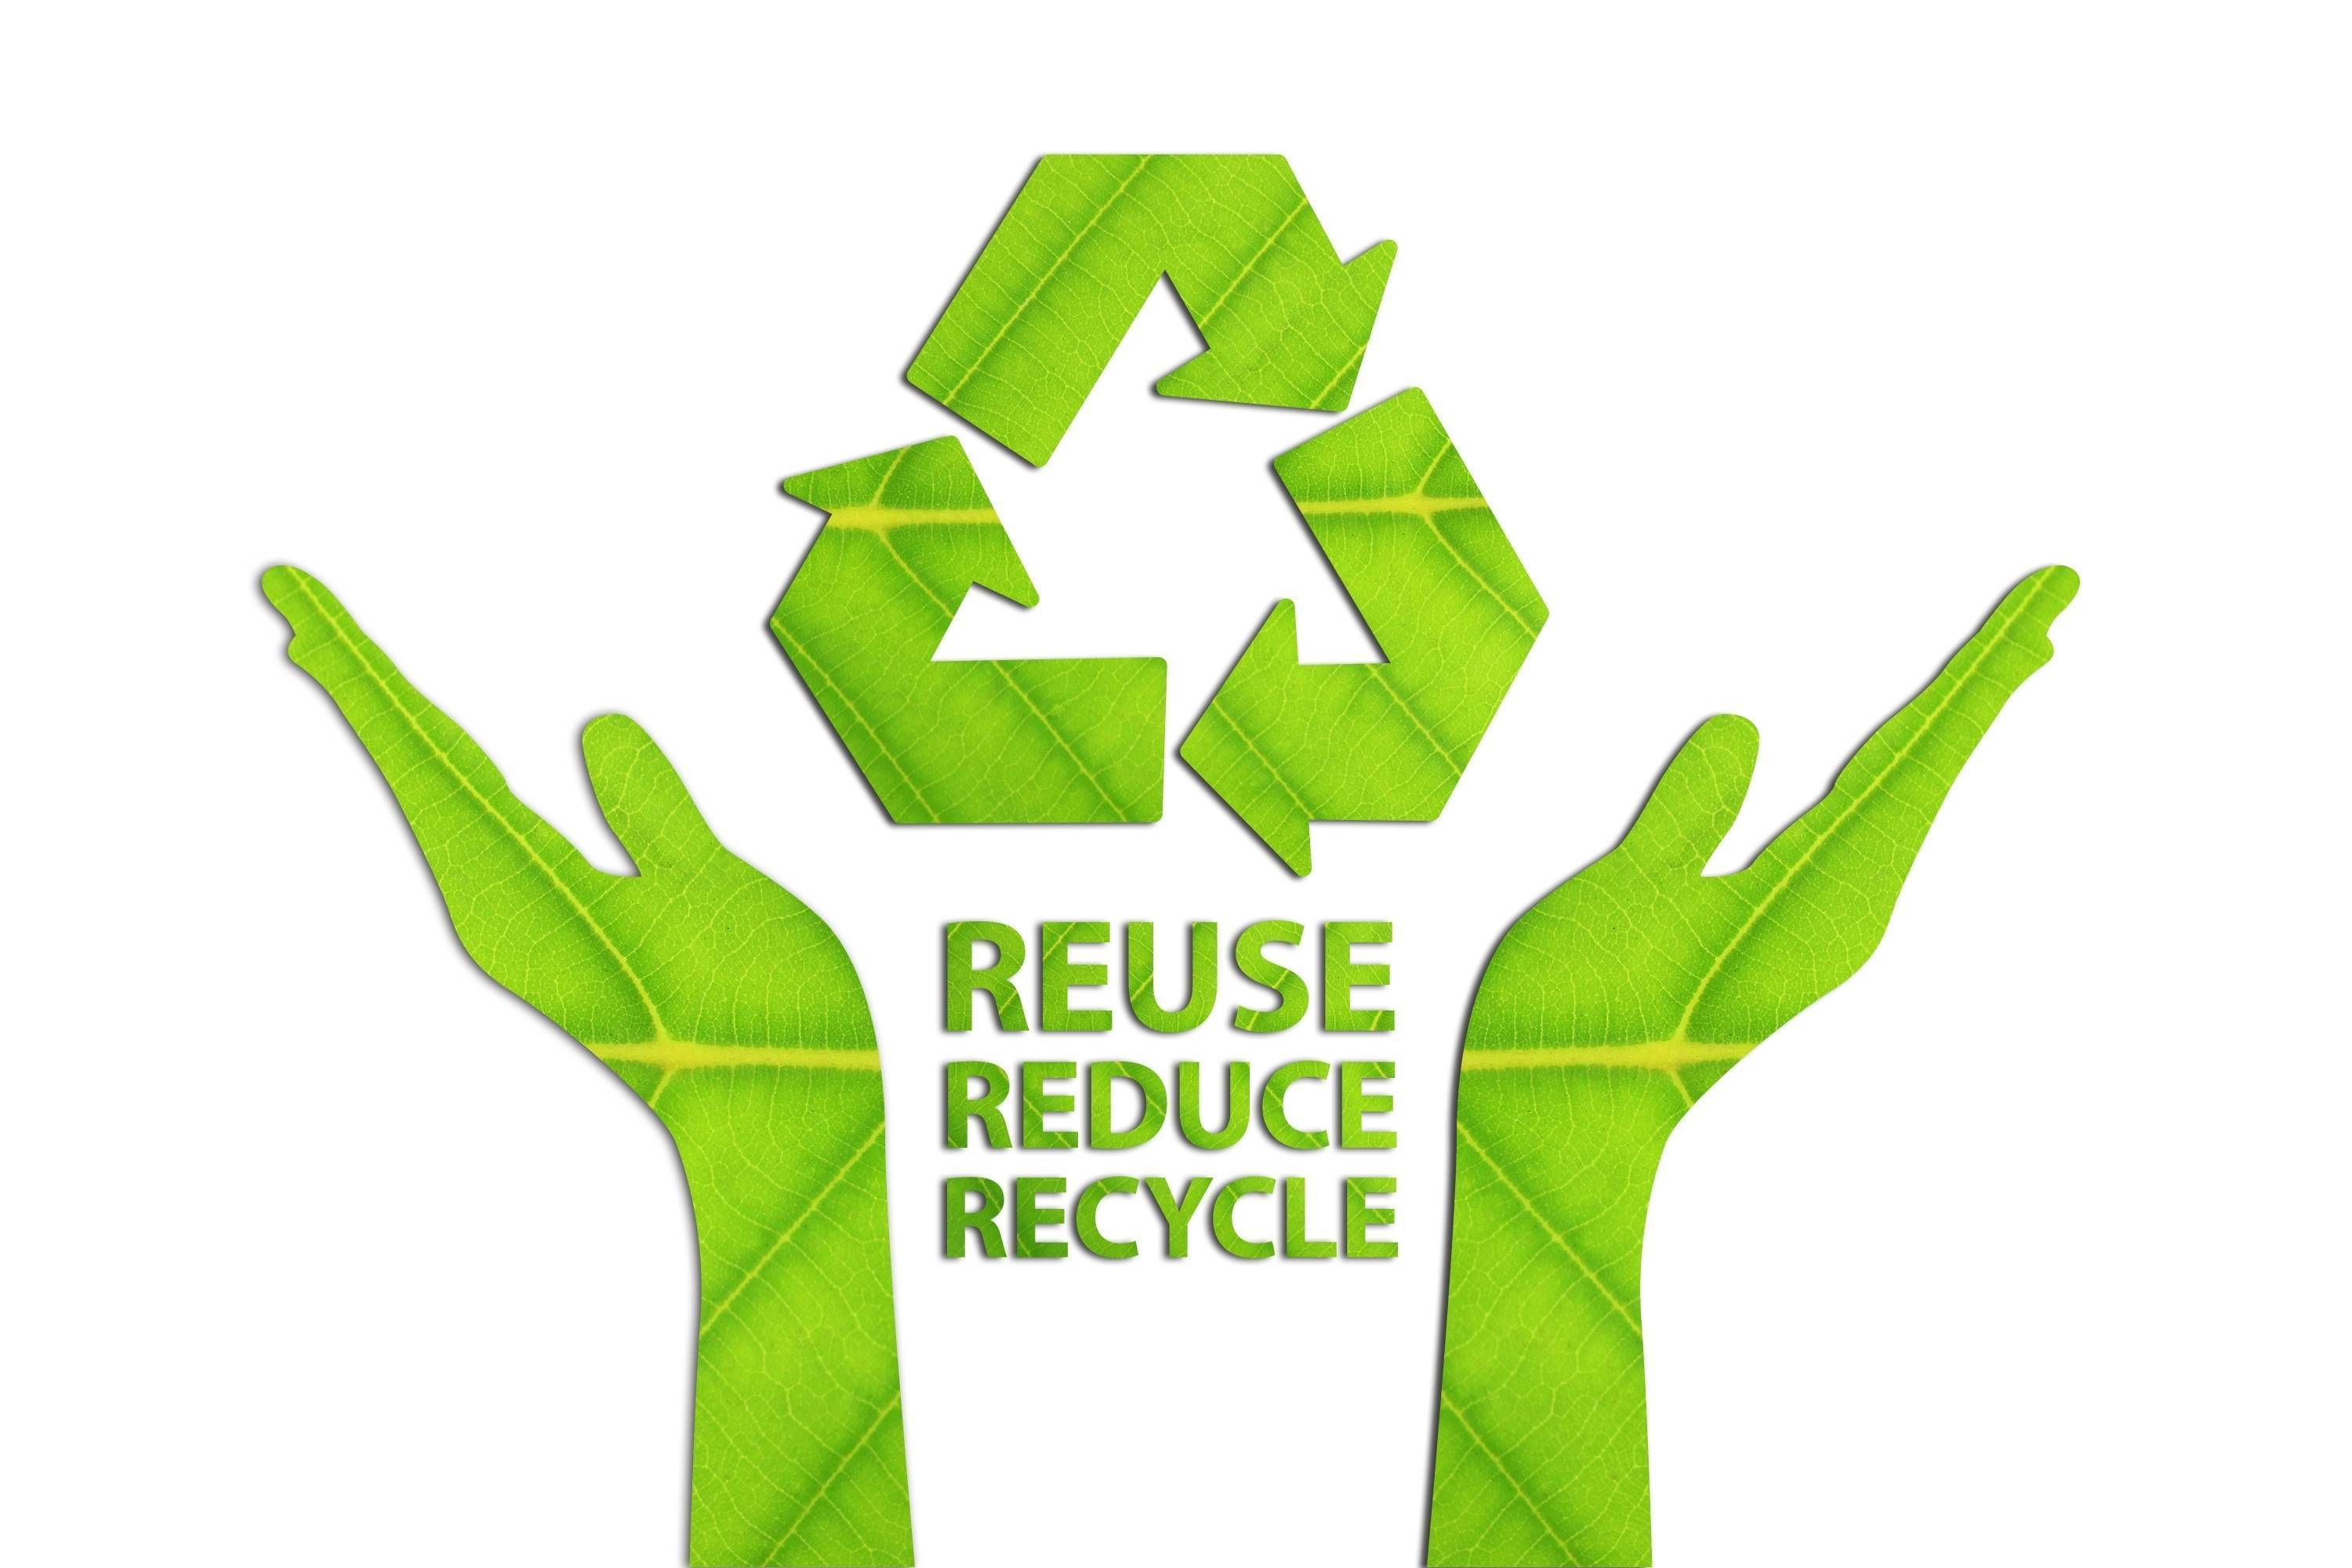 Global Recycling Policies Impact Edison Recycling Collection